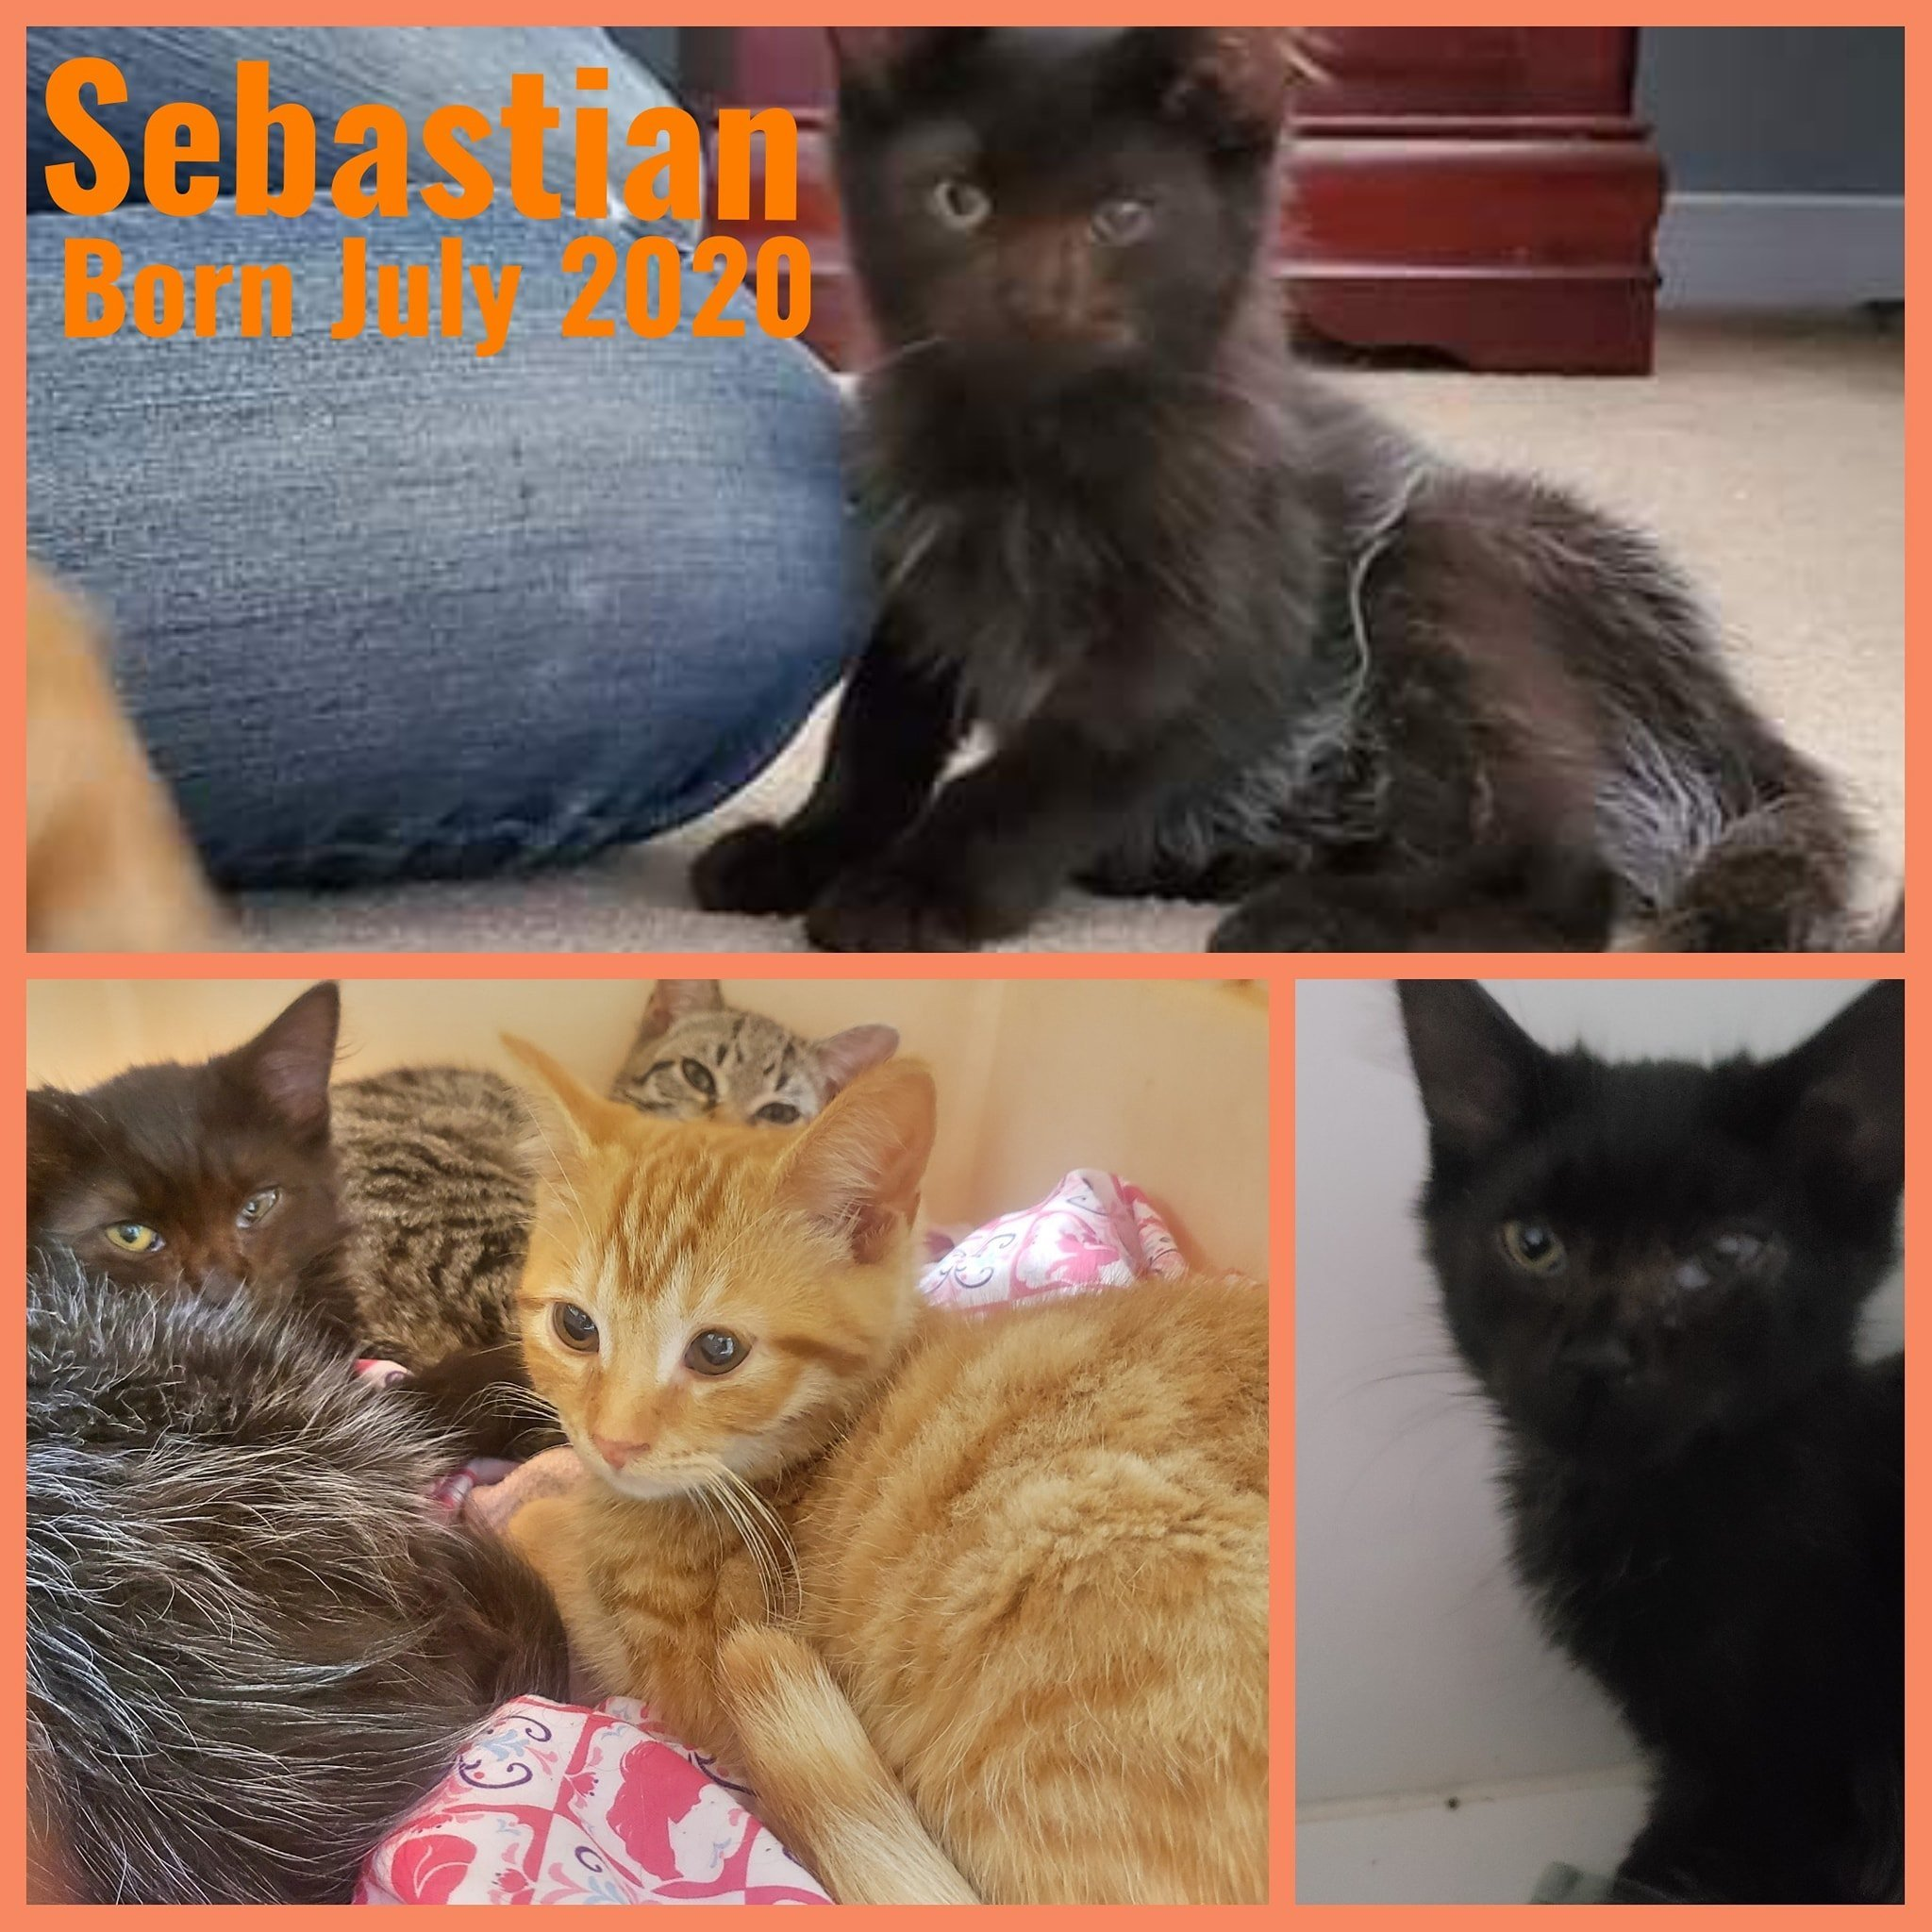 Sebastian-Male-July 2020